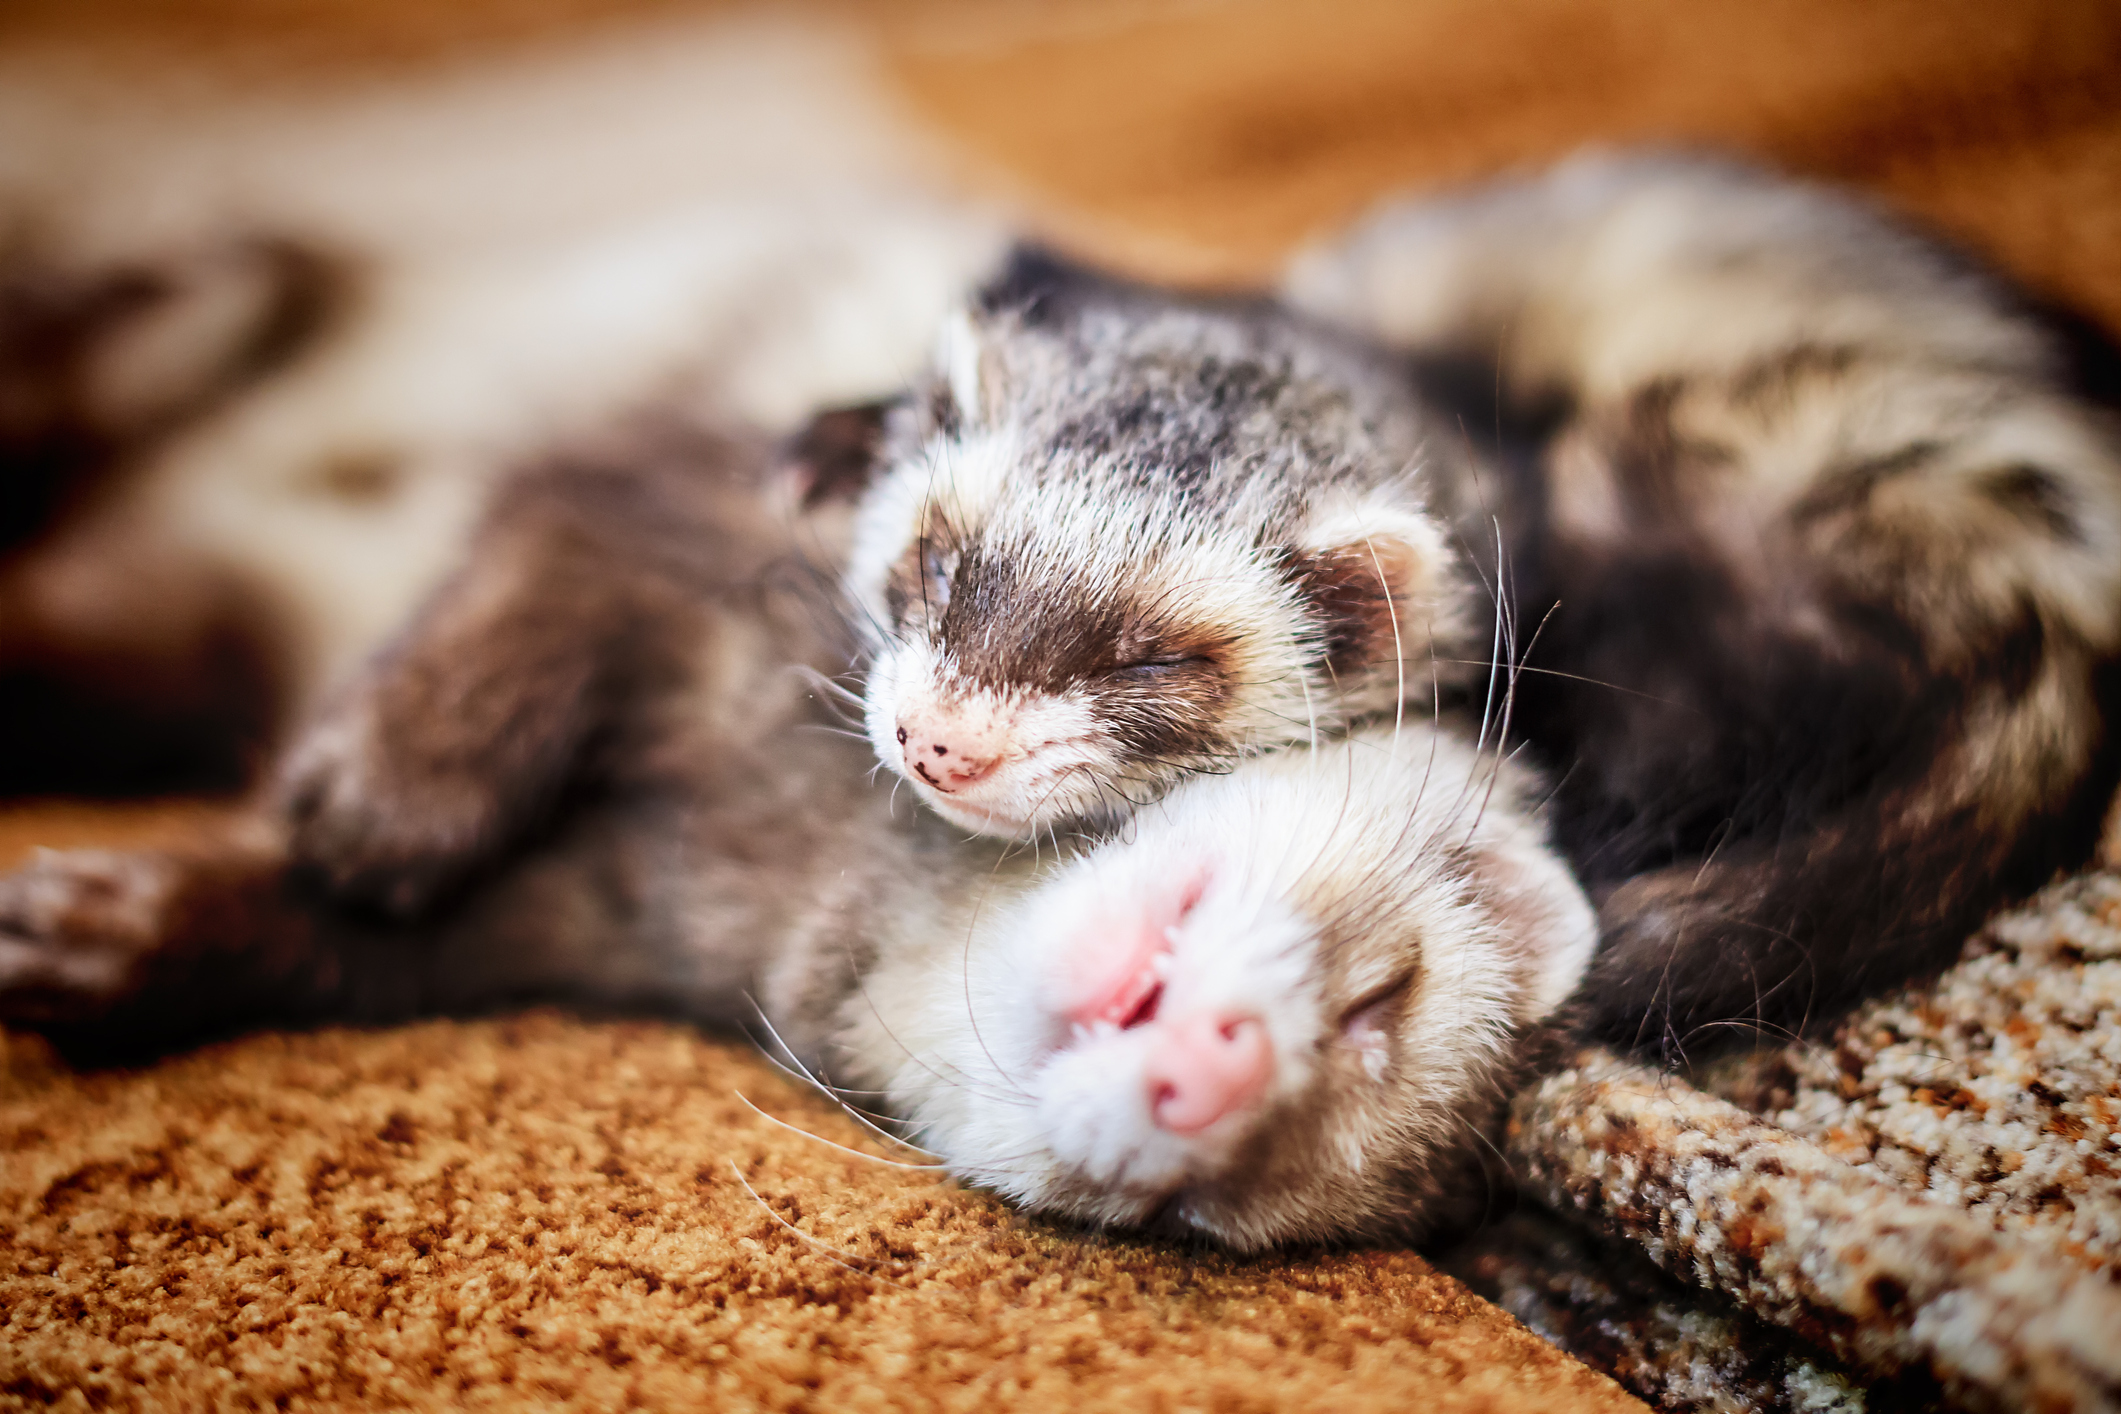 Ex-soldier's furry ferret friends banned from pub